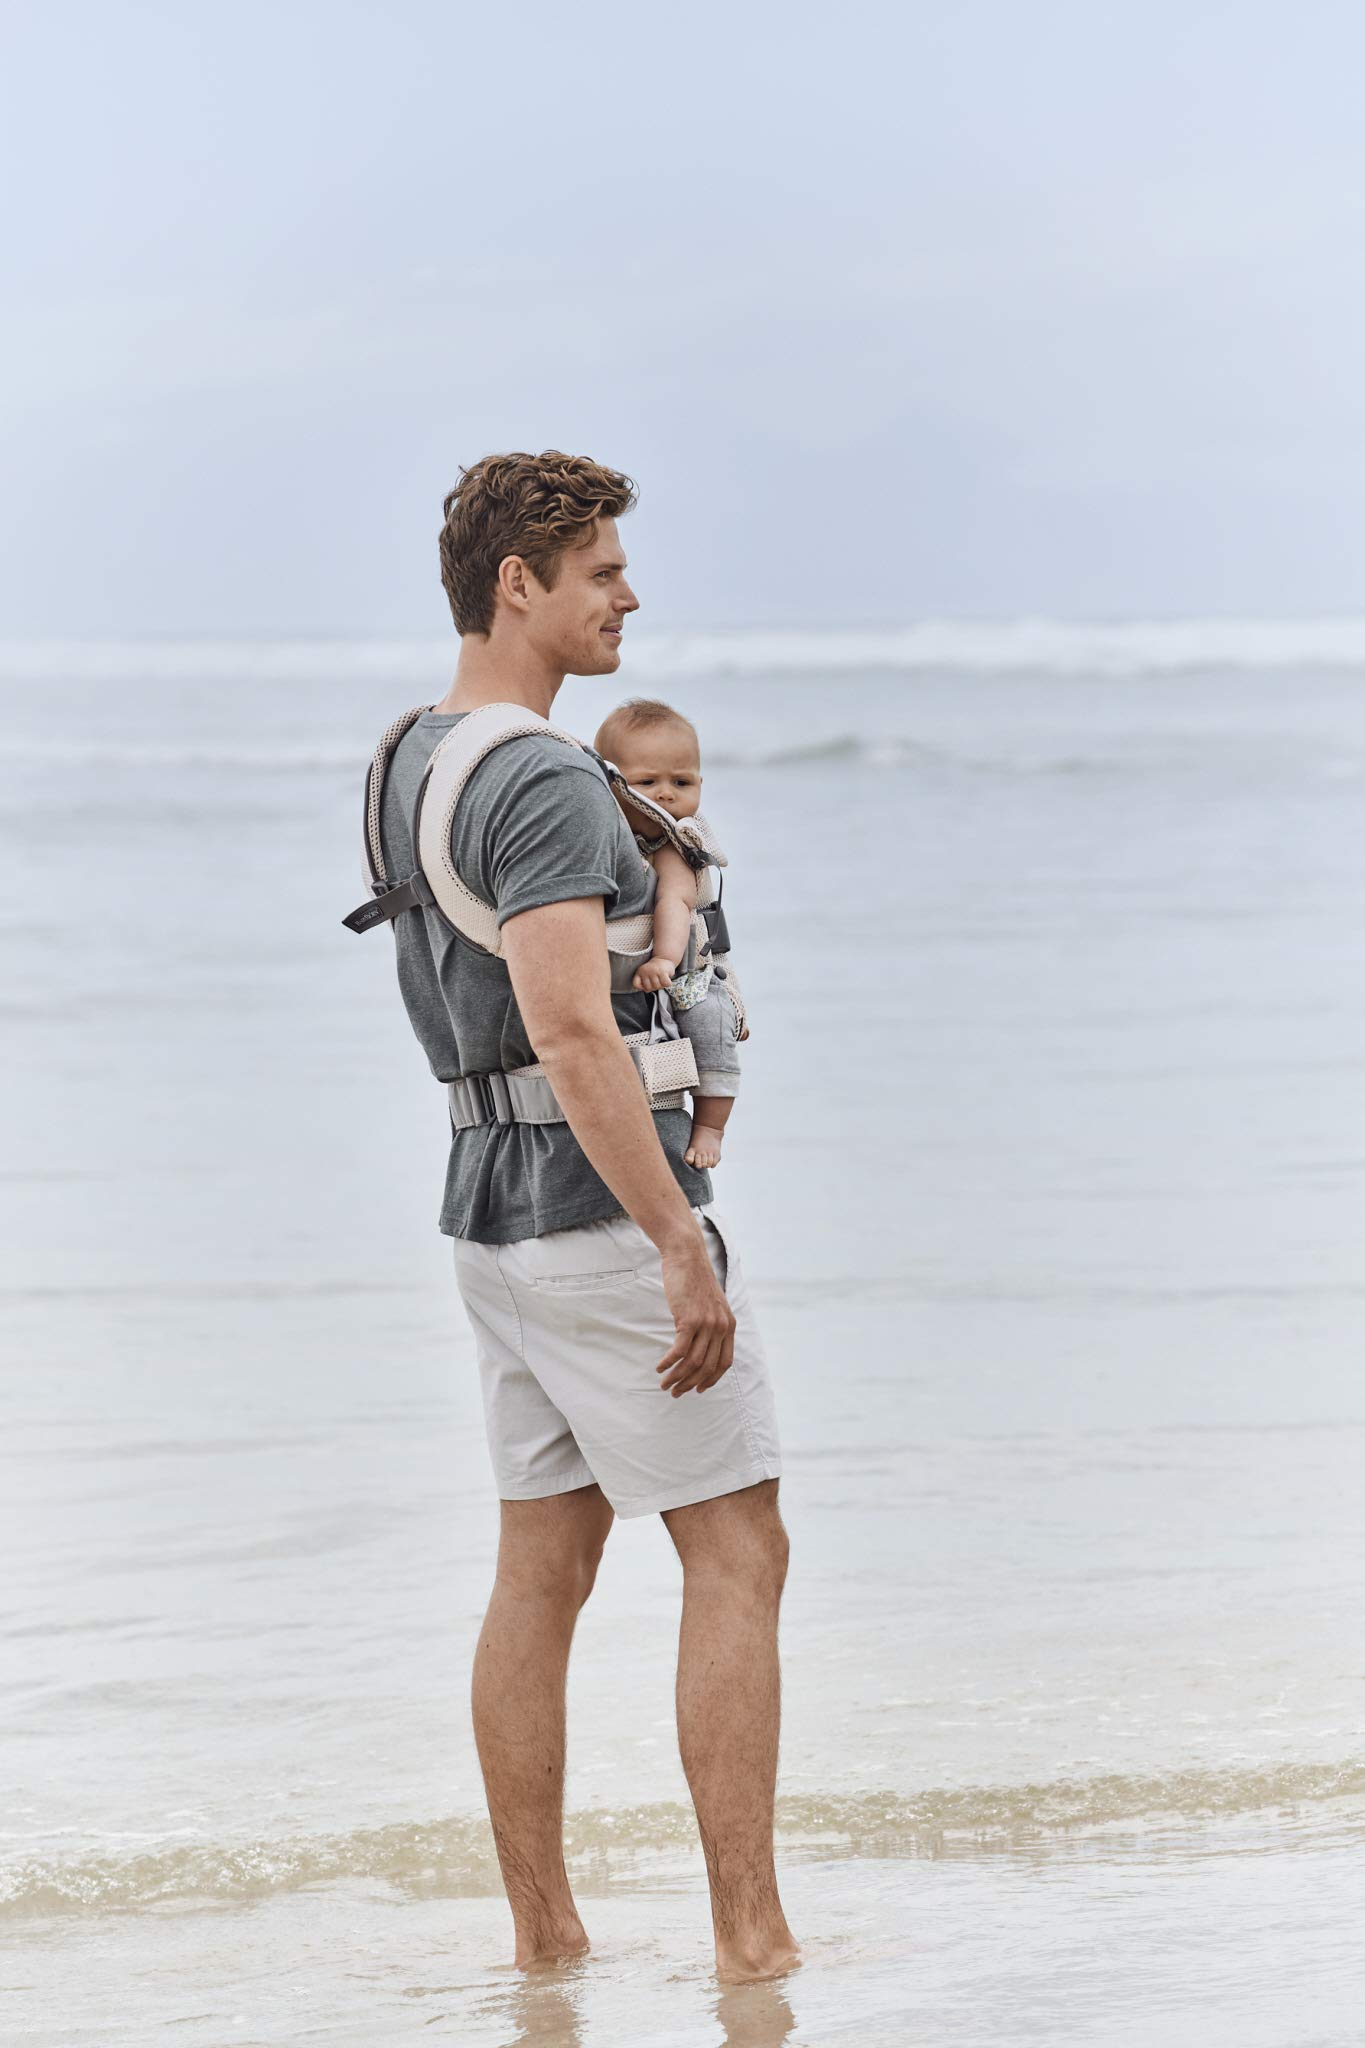 BABYBJÖRN Baby Carrier One, Cotton Mix, Black, 2018 Edition Baby Bjorn The latest version with soft and breathable mesh that dries quickly Ergonomic baby carrier with excellent support 4 carrying positions: facing in (two height positions), facing out or on your back 8